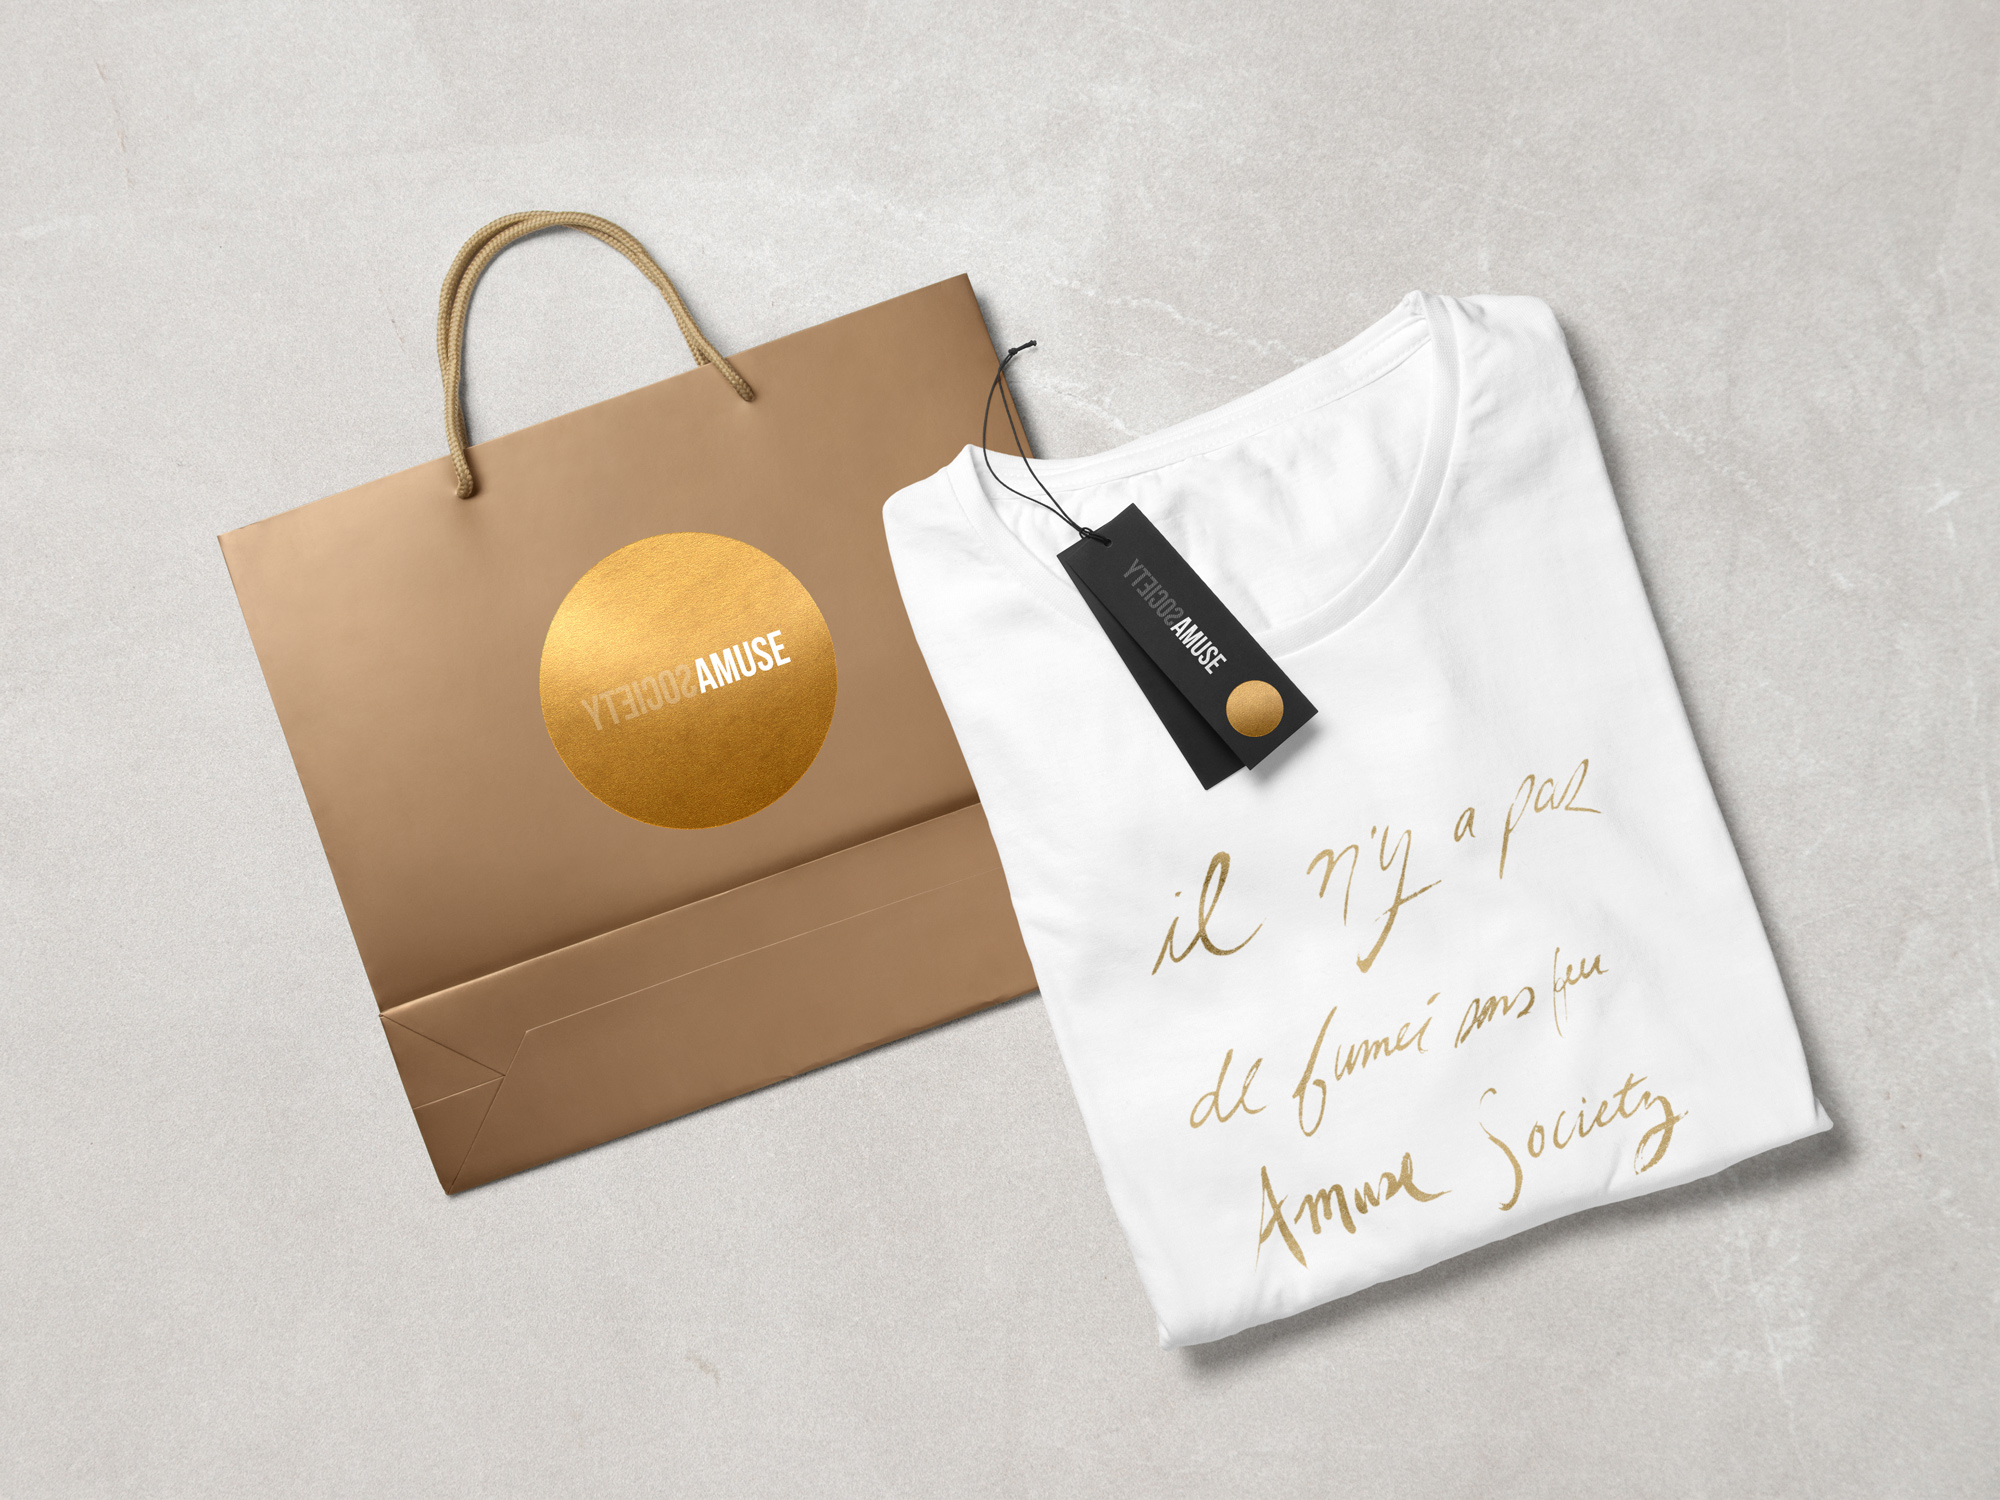 Apparel and packaging graphic design.